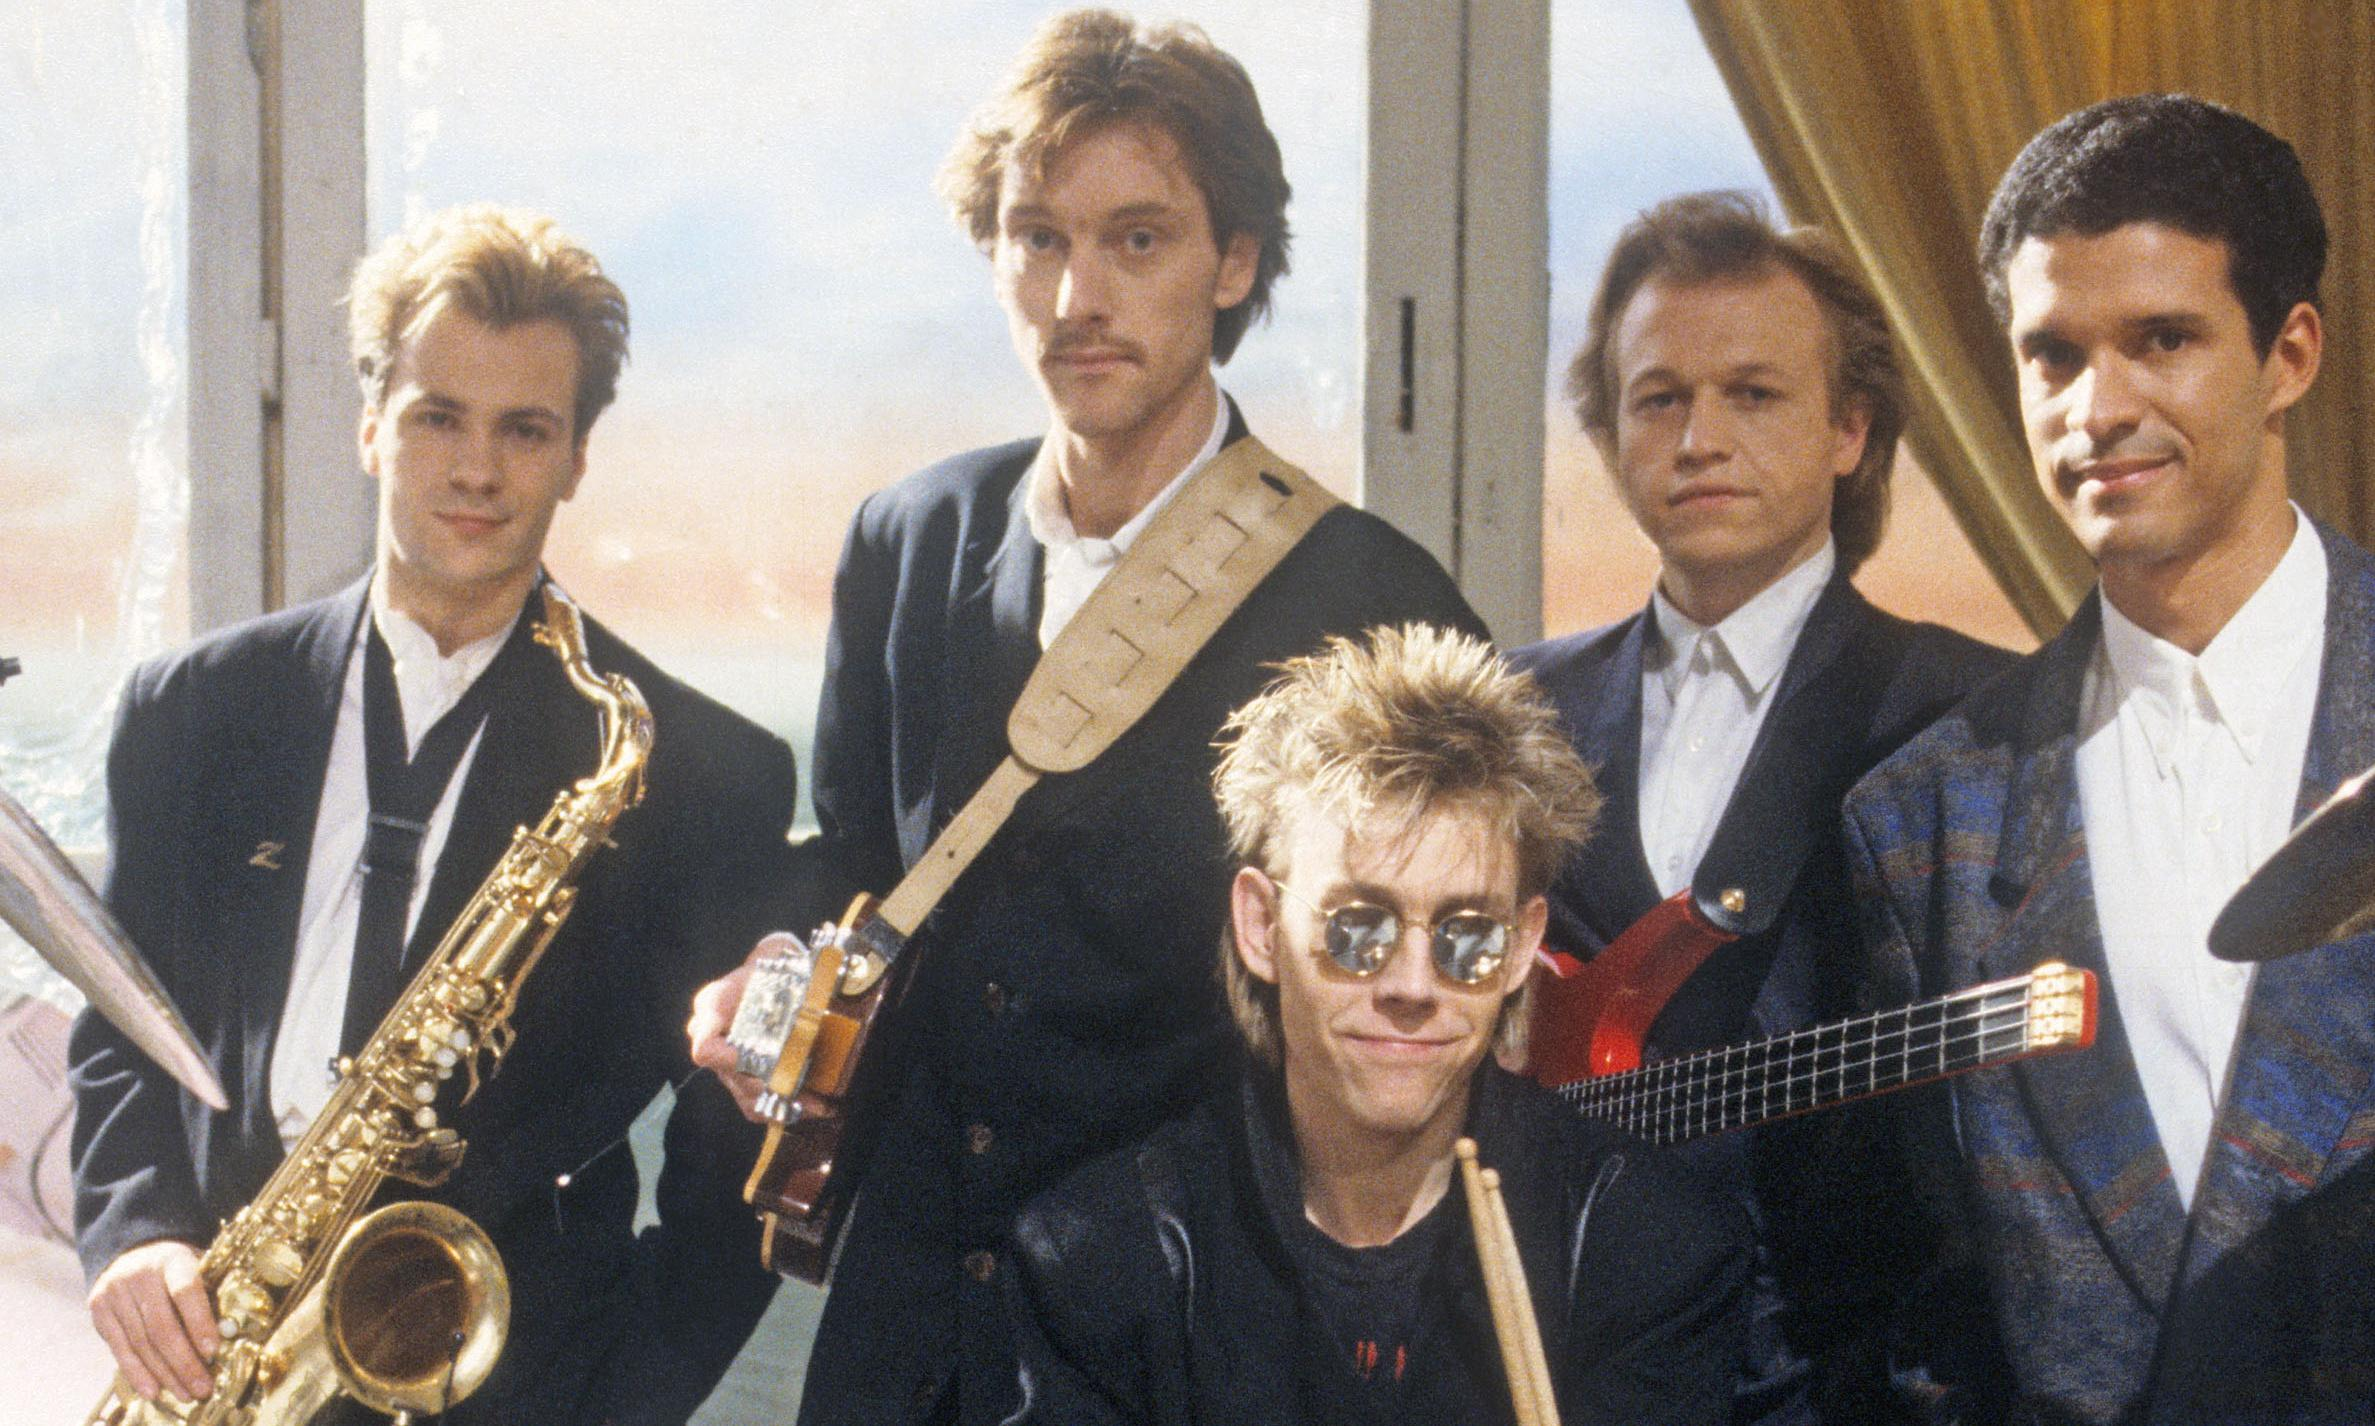 Level 42 founding member took his own life, inquest concludes